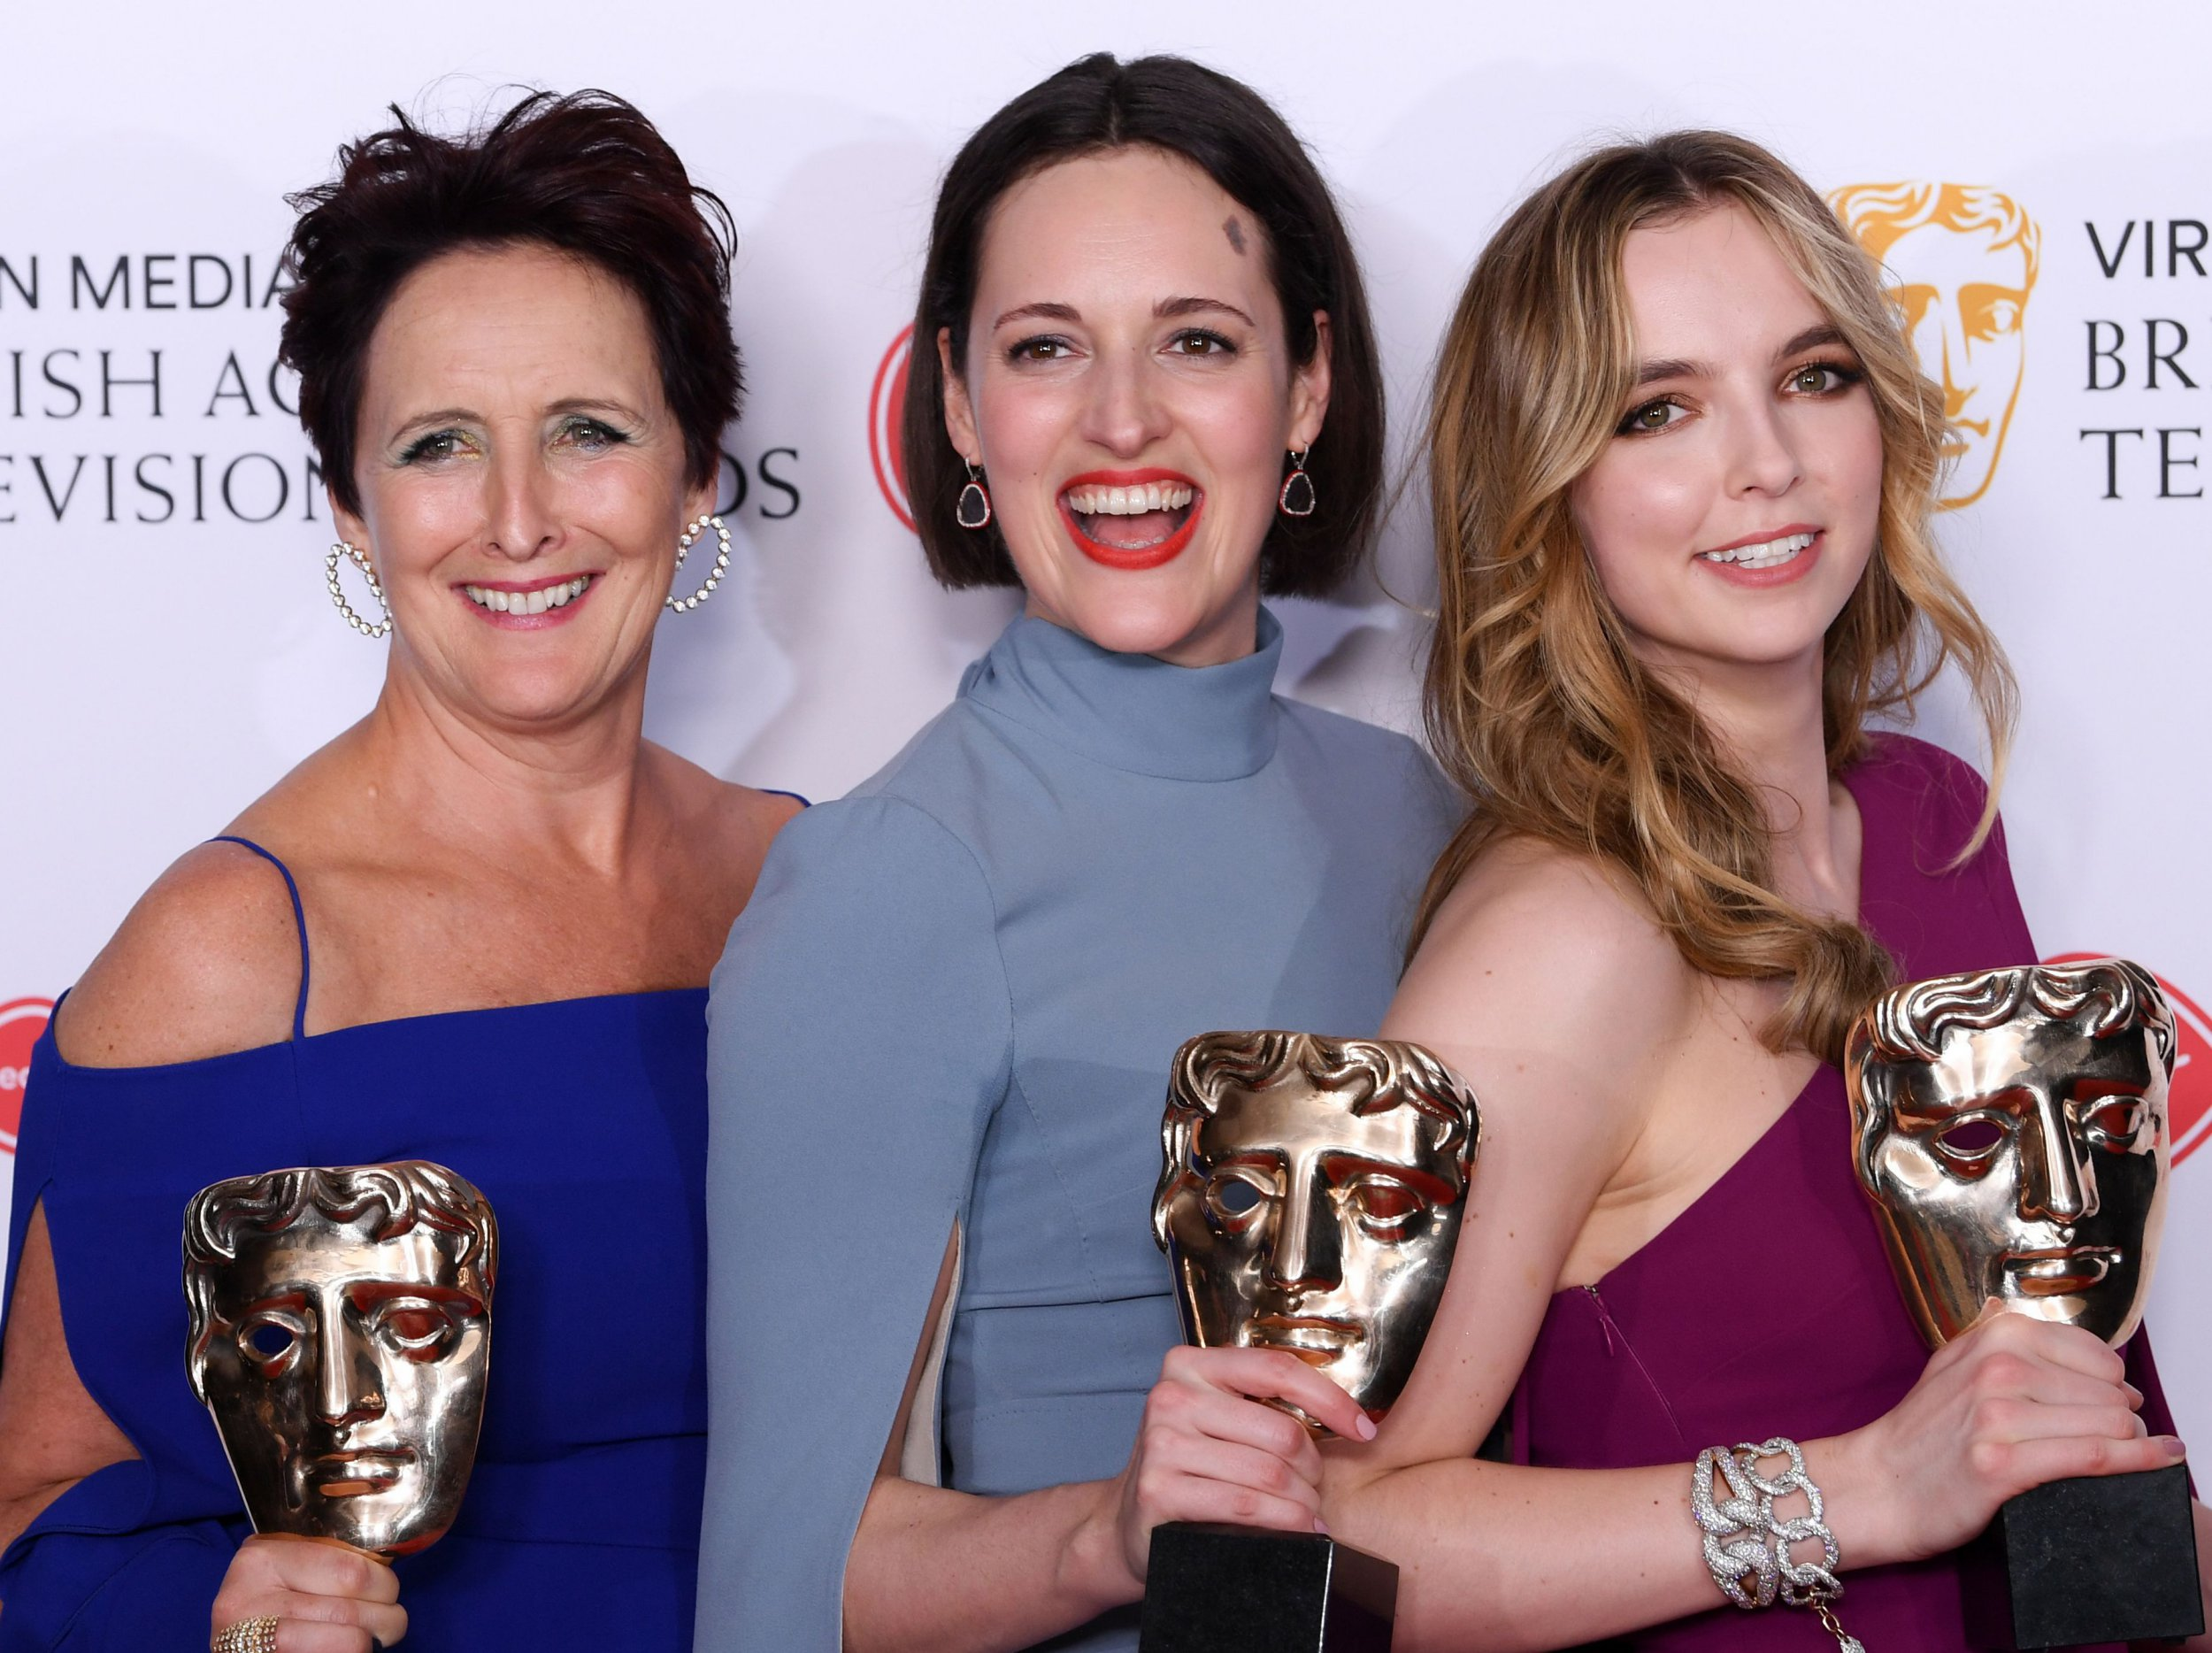 From Jodie Comer and Killing Eve to Patrick Melrose: All the winners from Bafta TV Awards 2019